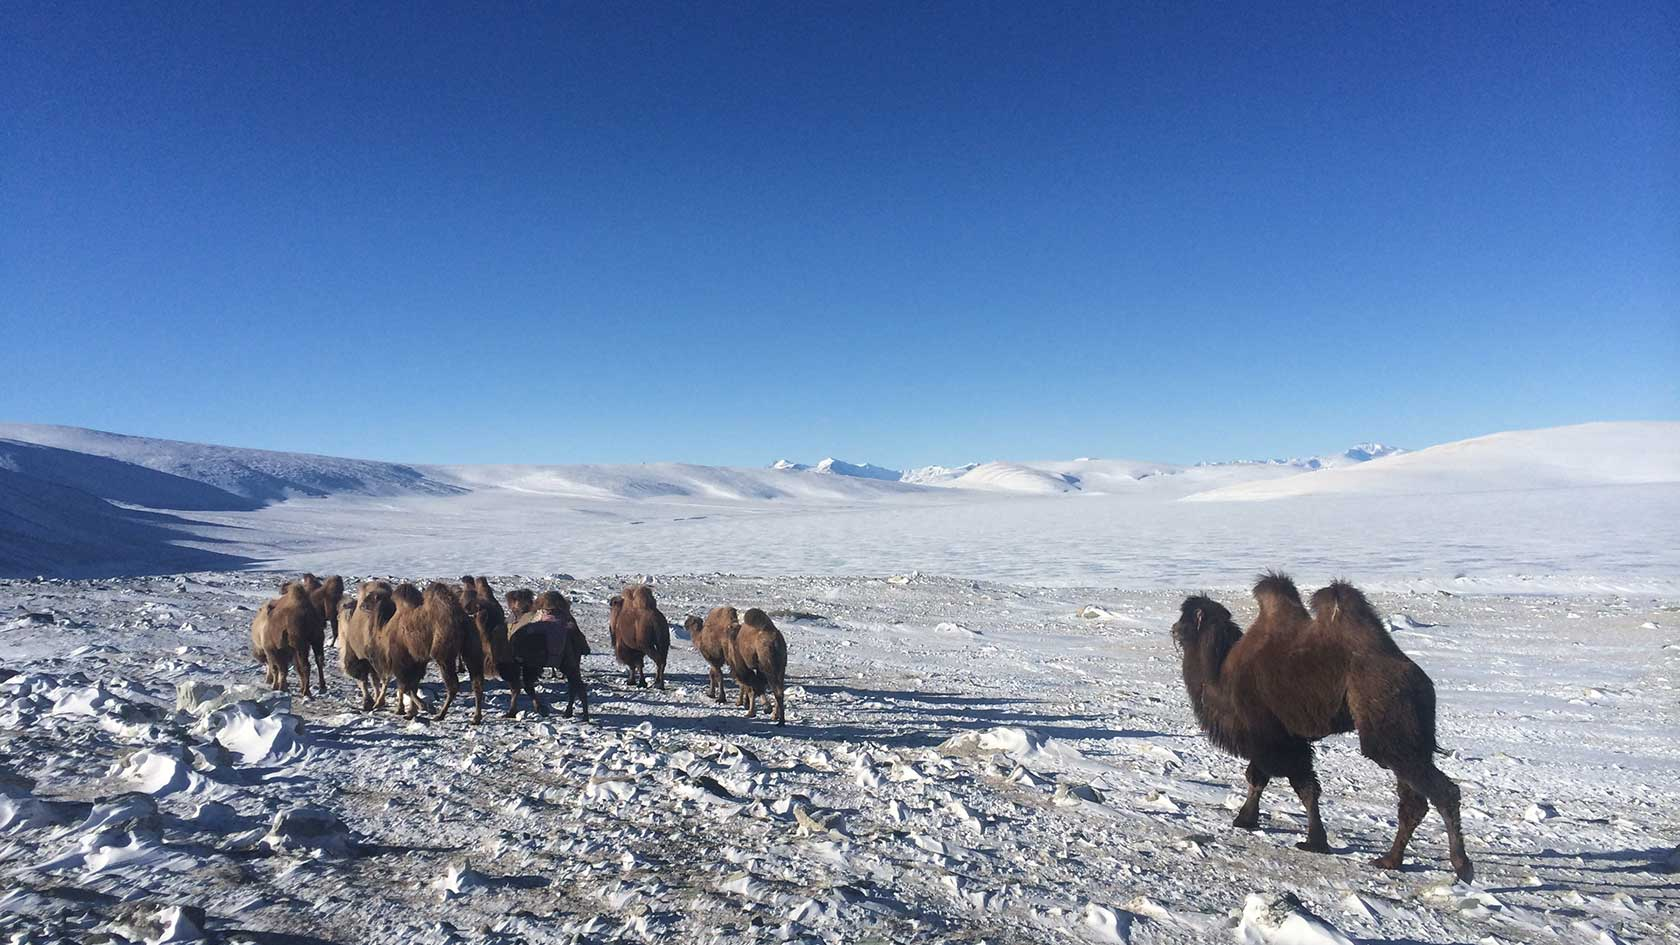 MEET THE UNEXPECTED IN MONGOLIA